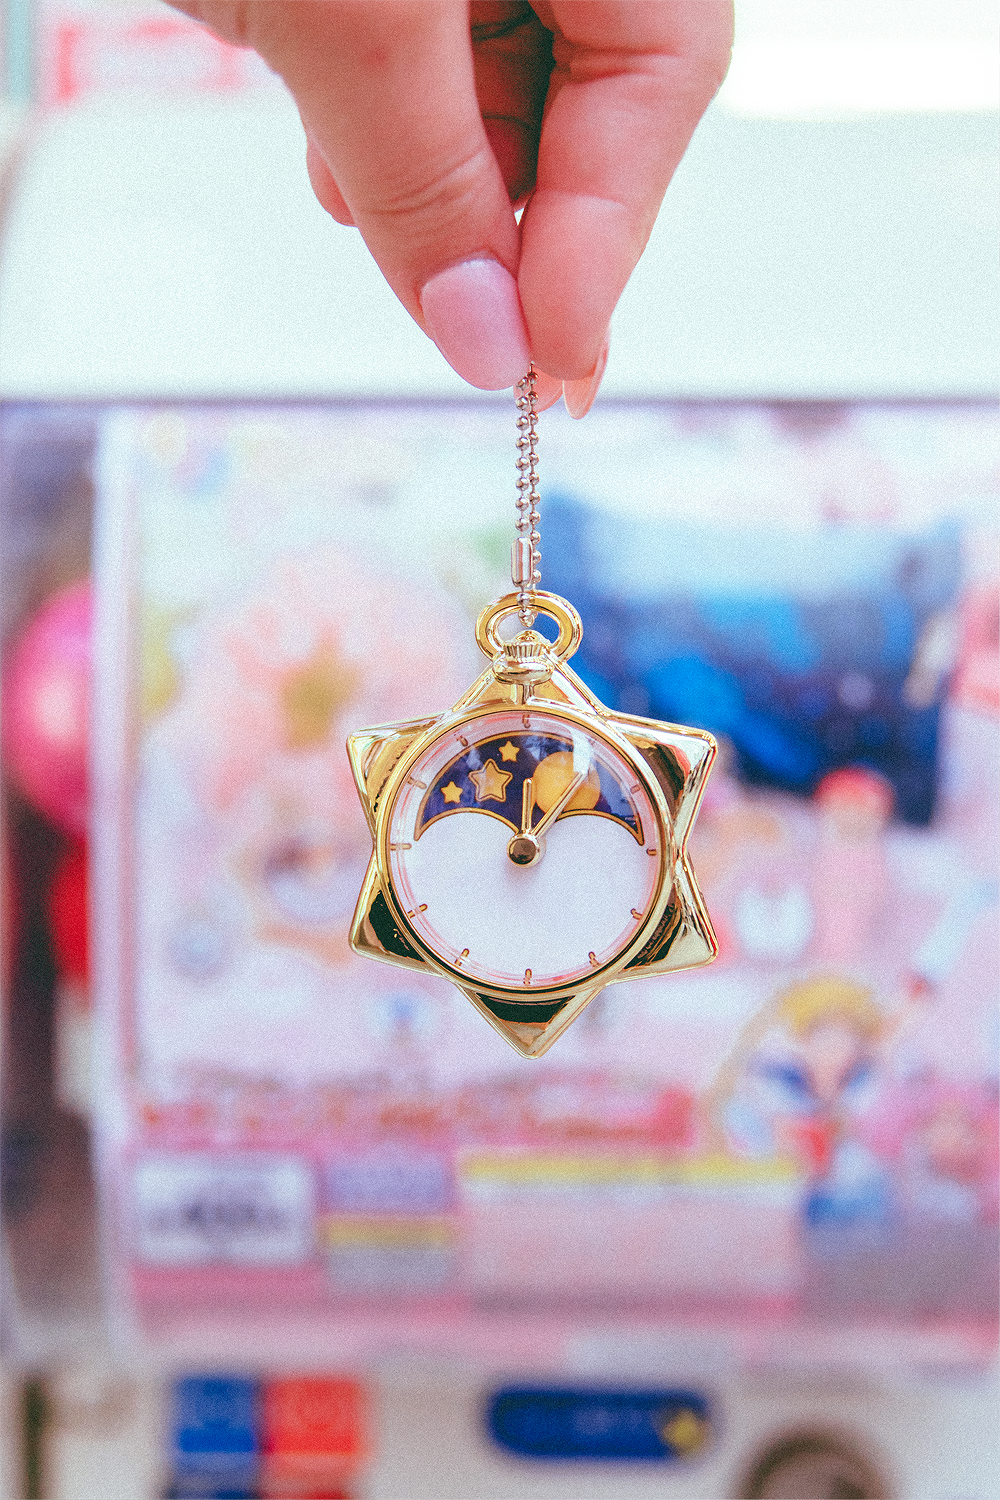 It only took about 6 tries to get Mamoru's pocket watch from Sailor Moon...